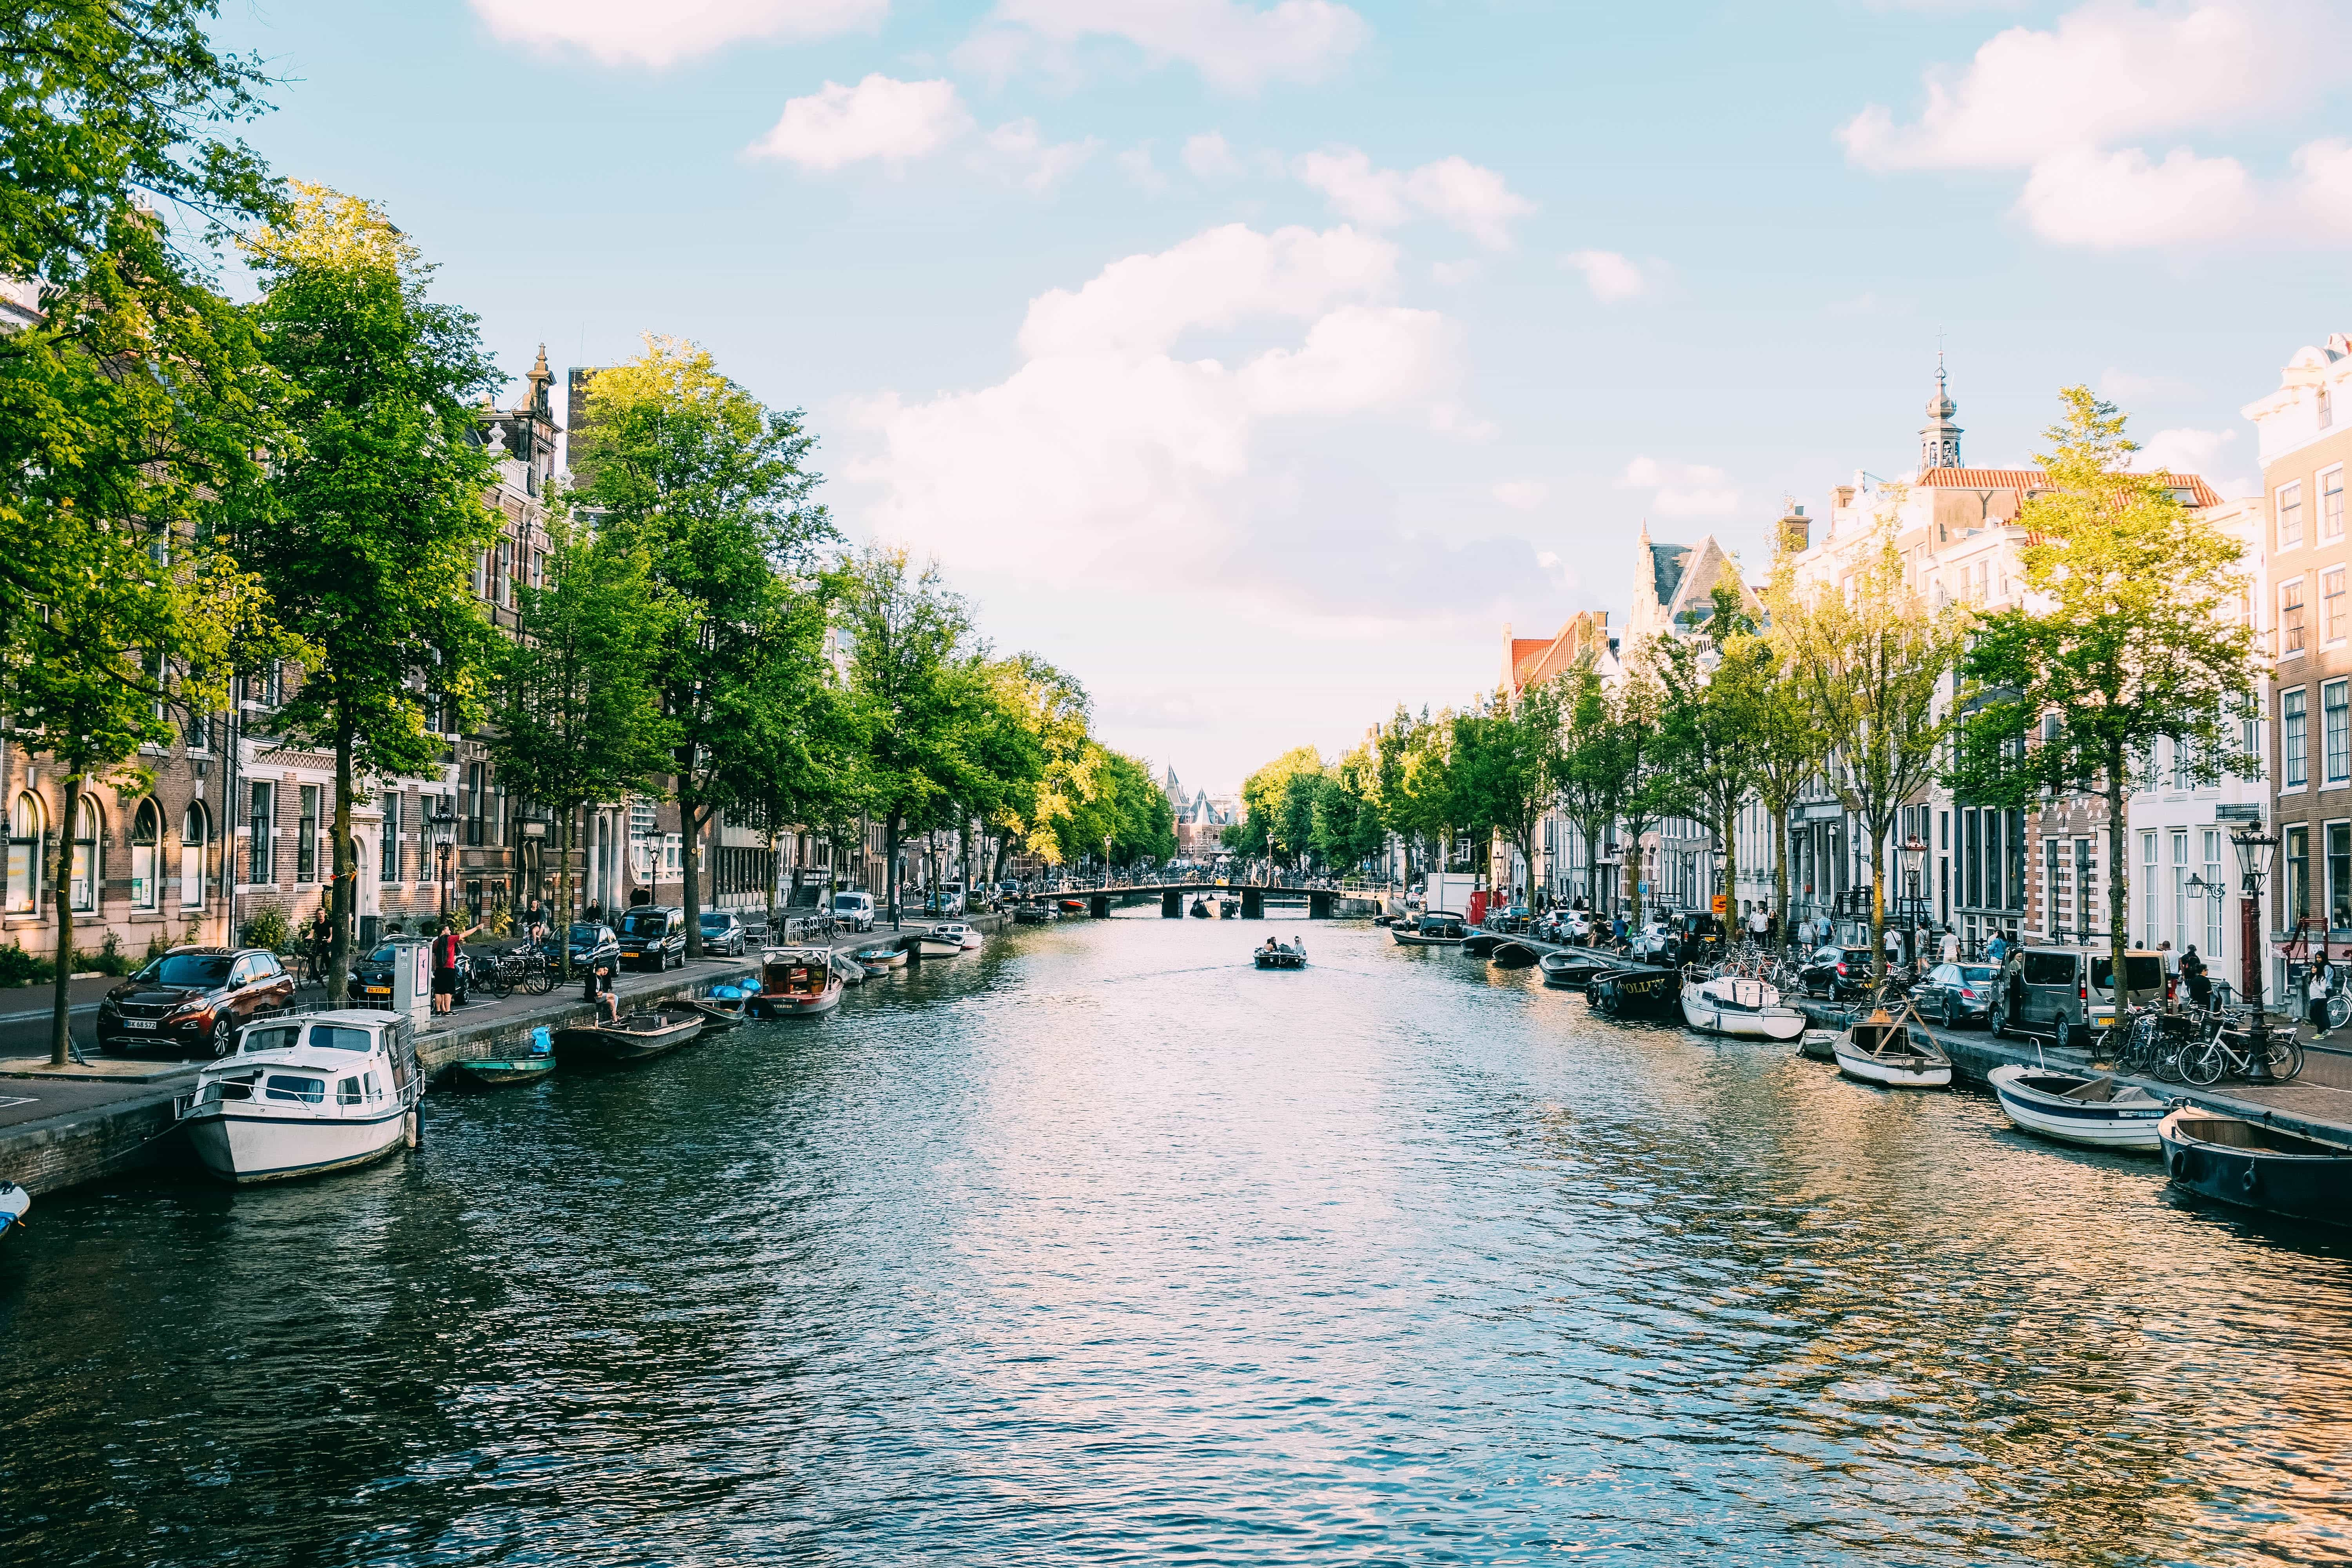 A picture of an Amsterdam canal, boats lining the edges and a bridge in the distance.